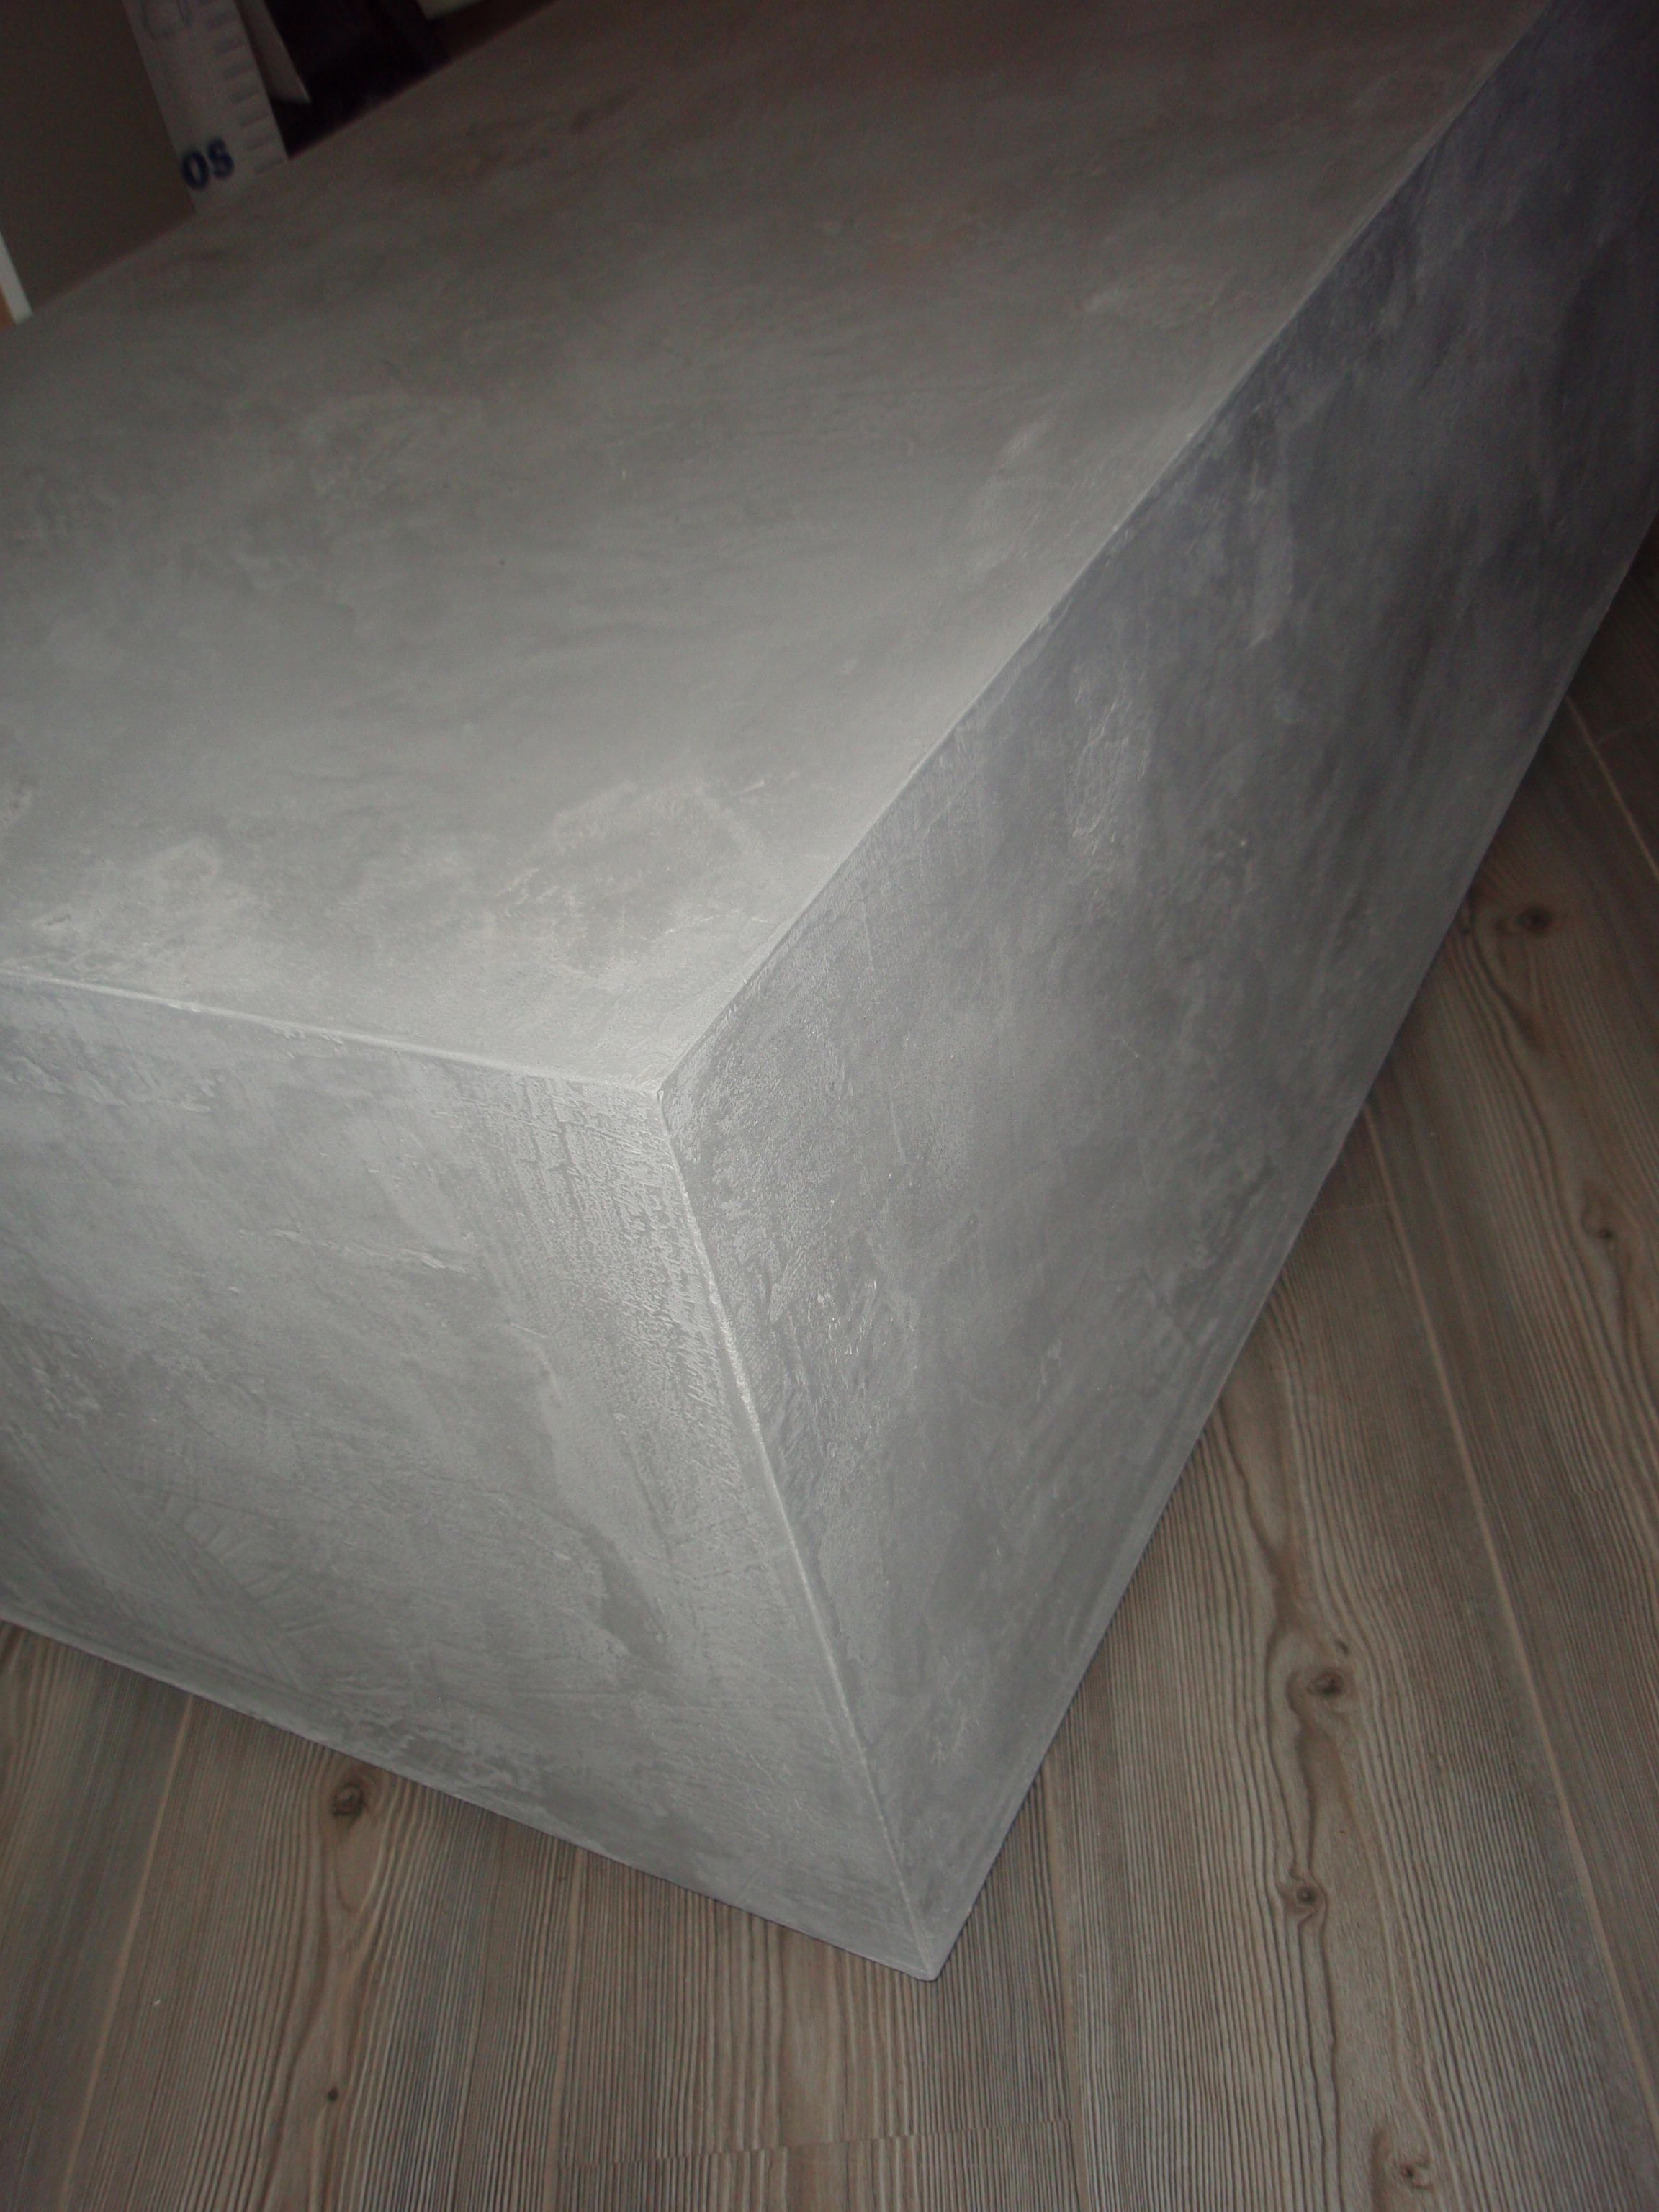 Beton cire over mdf eigen werk pinterest diy and crafts - Badkamer beton wax ...